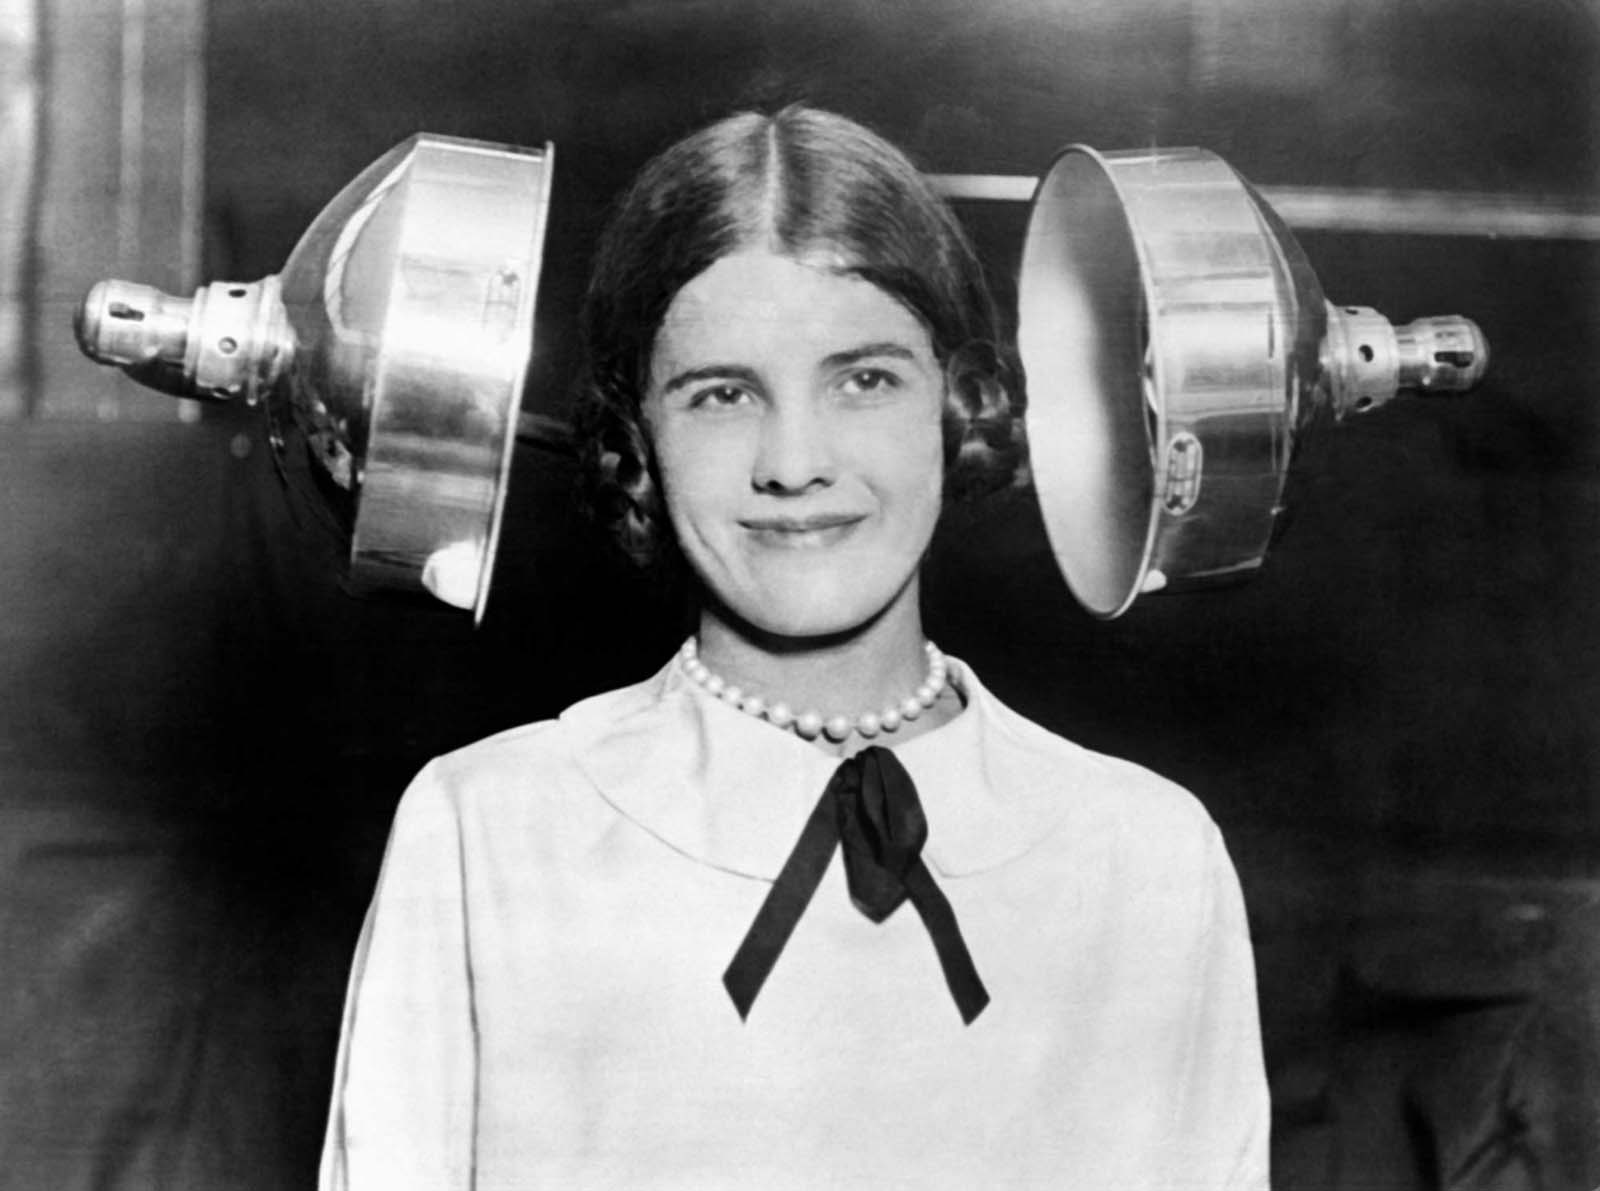 New hair dryers have been invented lately to simplify women's lives, circa 1930.